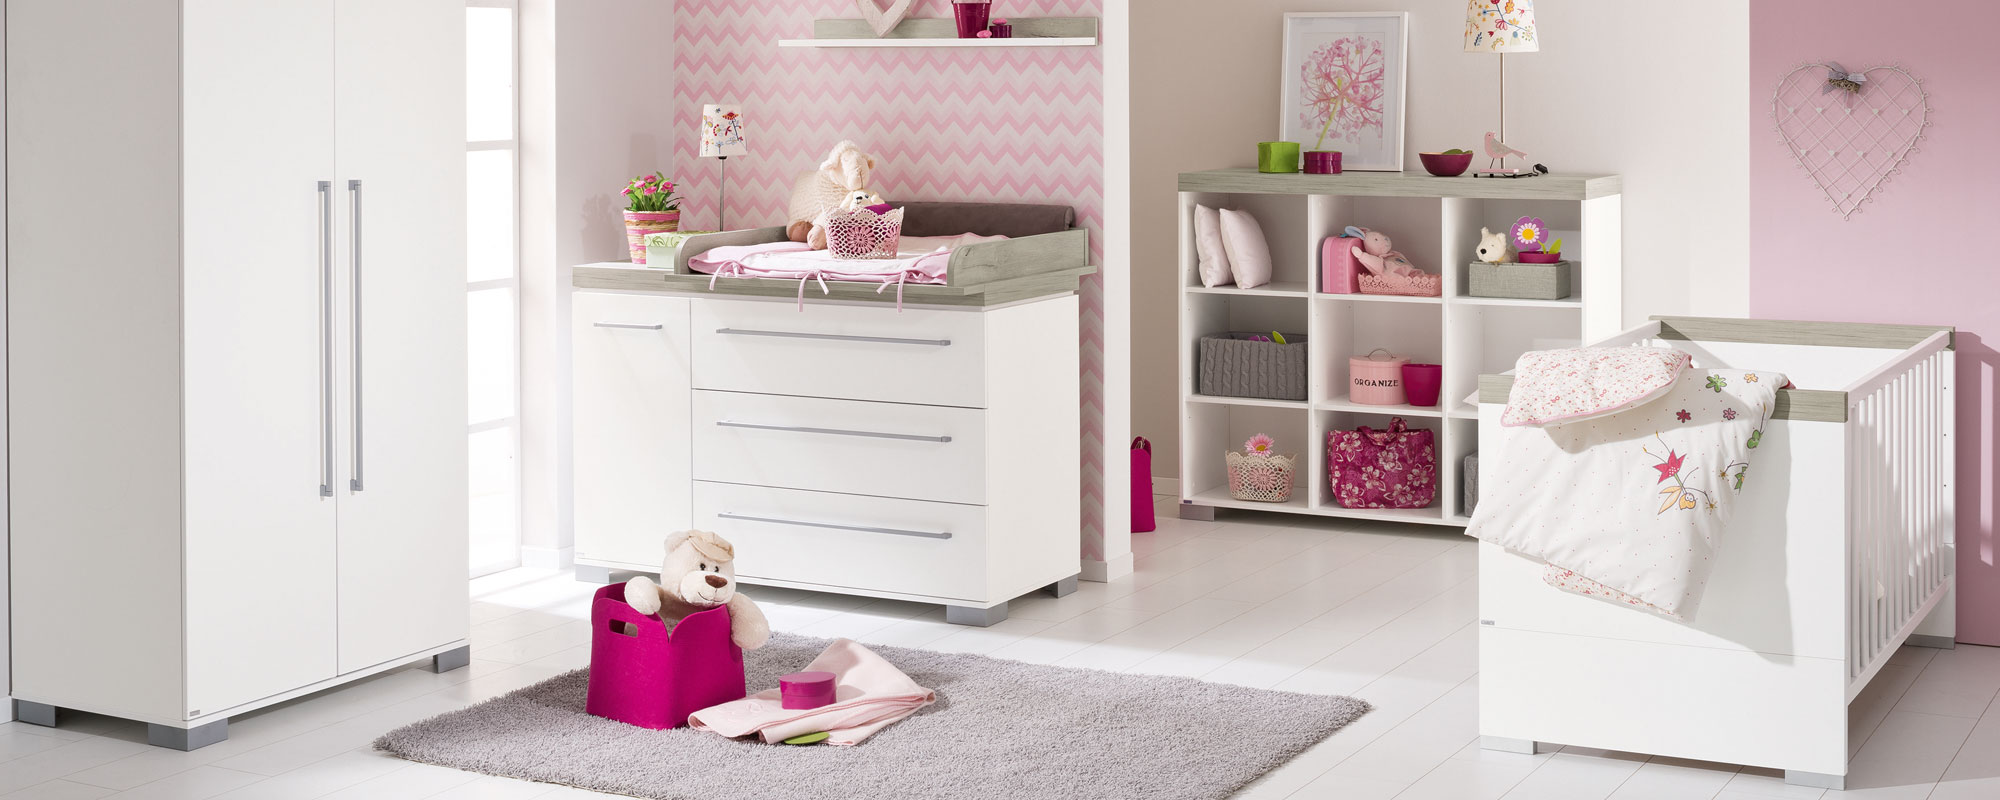 bilder babyzimmer bilder babyzimmer gestalten babyzimmer. Black Bedroom Furniture Sets. Home Design Ideas